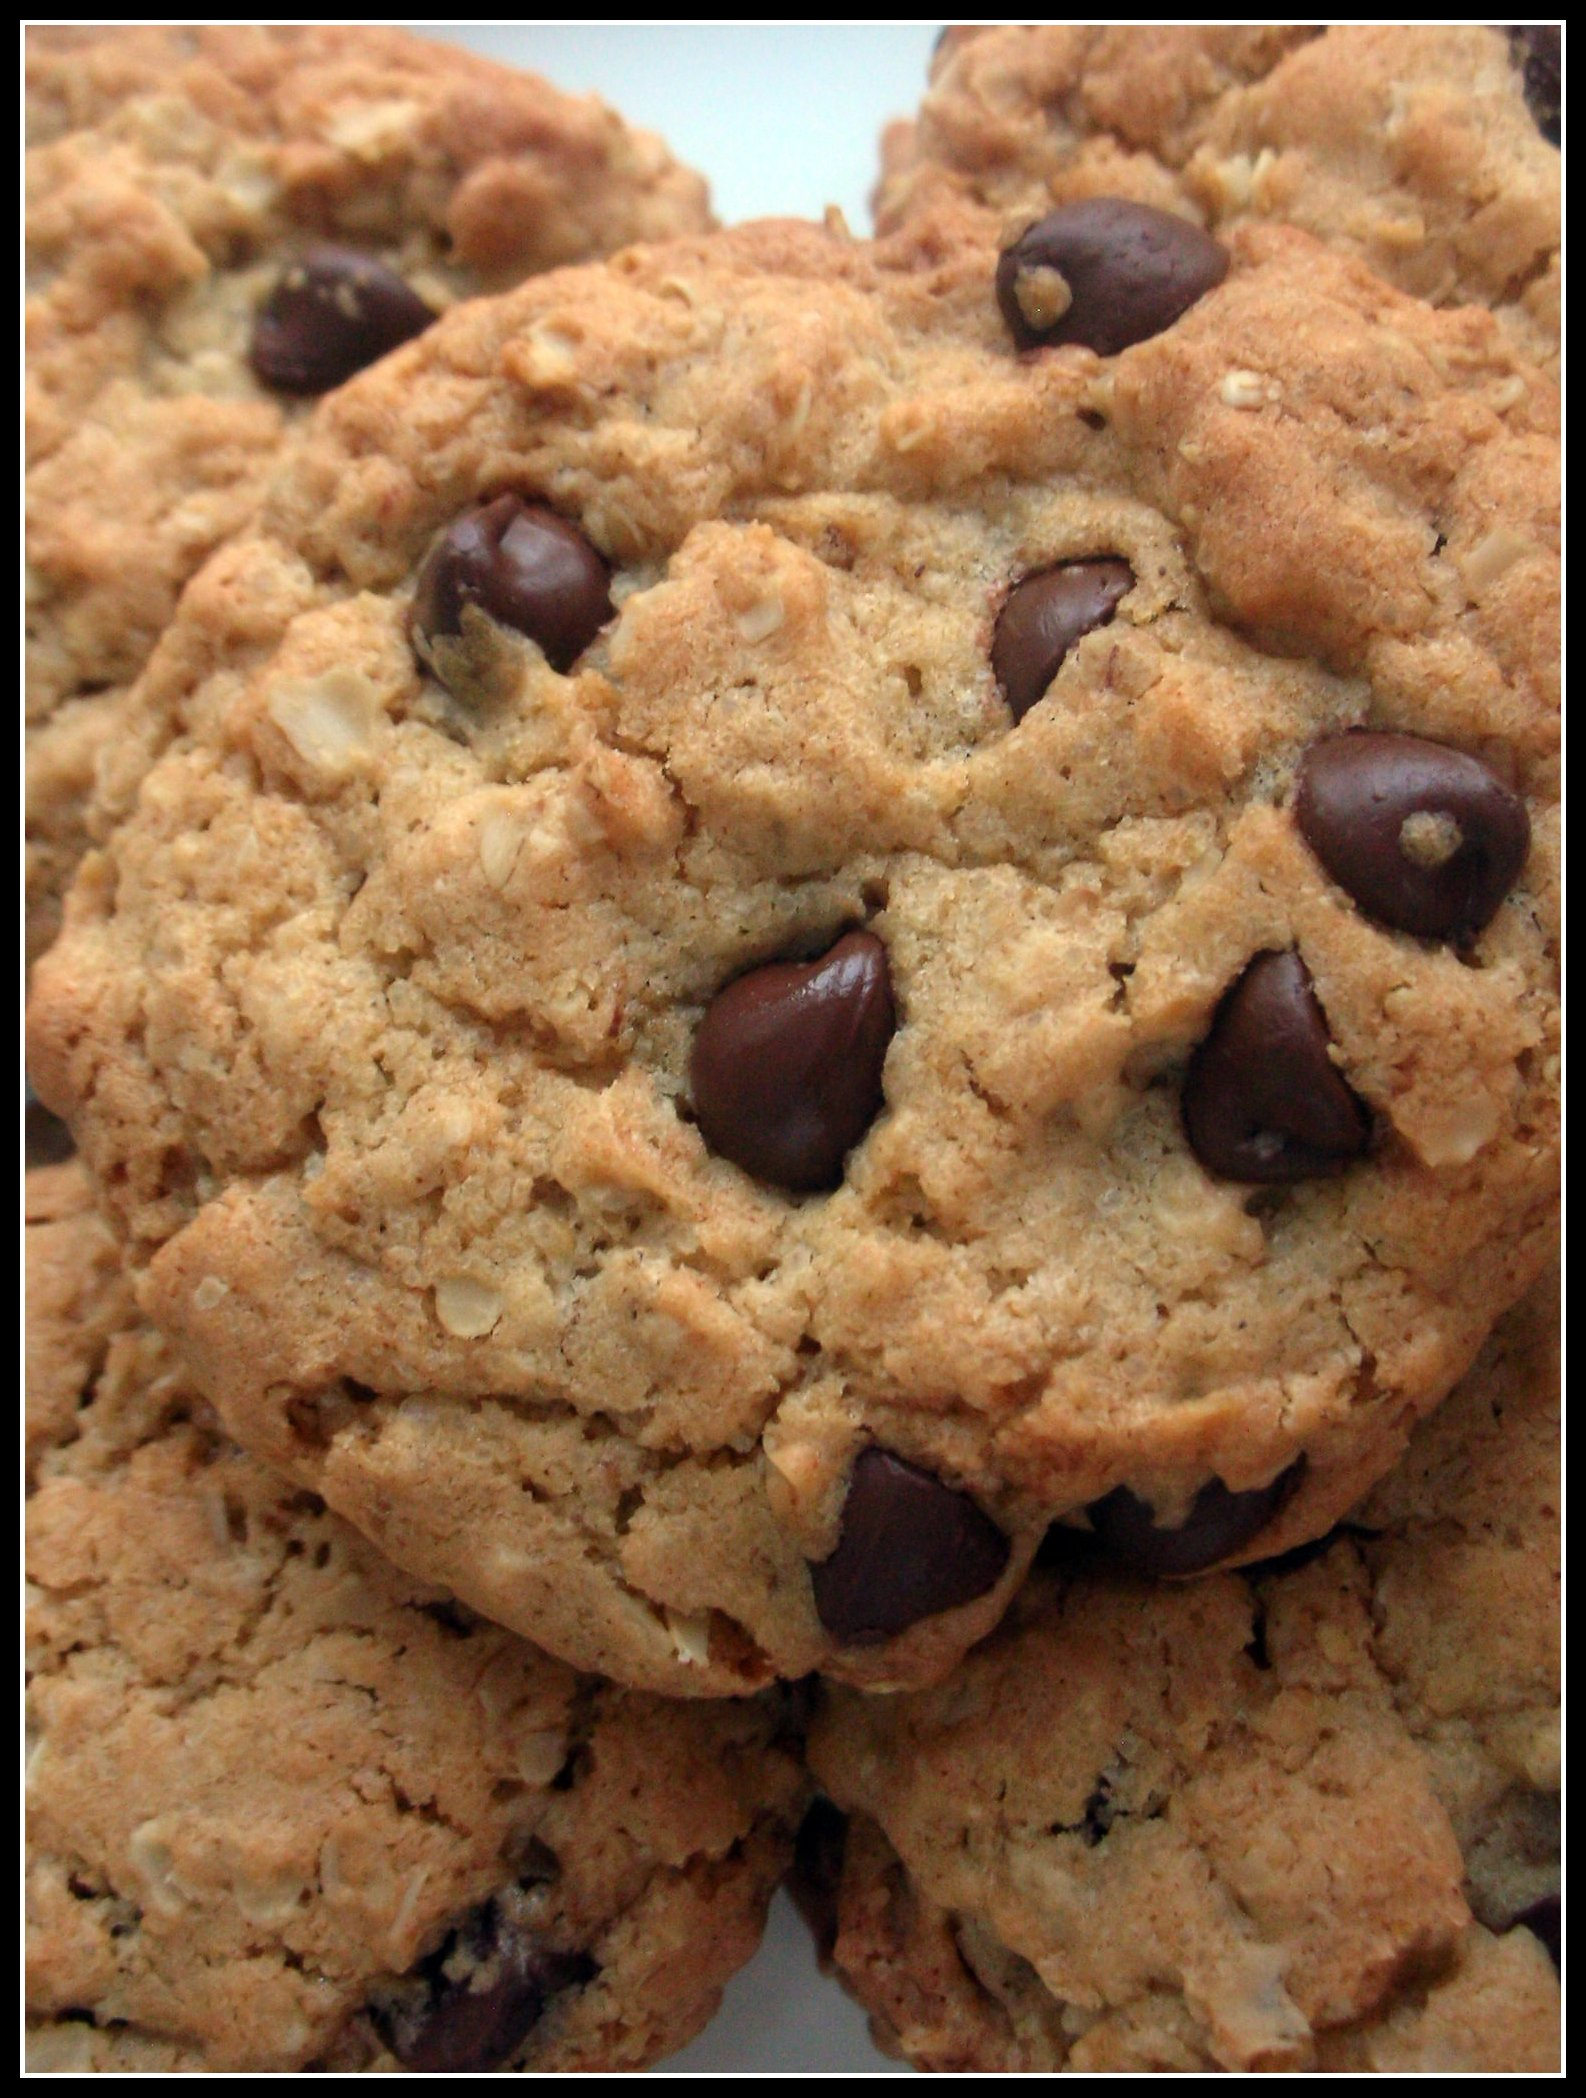 File:Chocolate Chip Oatmeal Cookies detail.jpg - Wikimedia ...